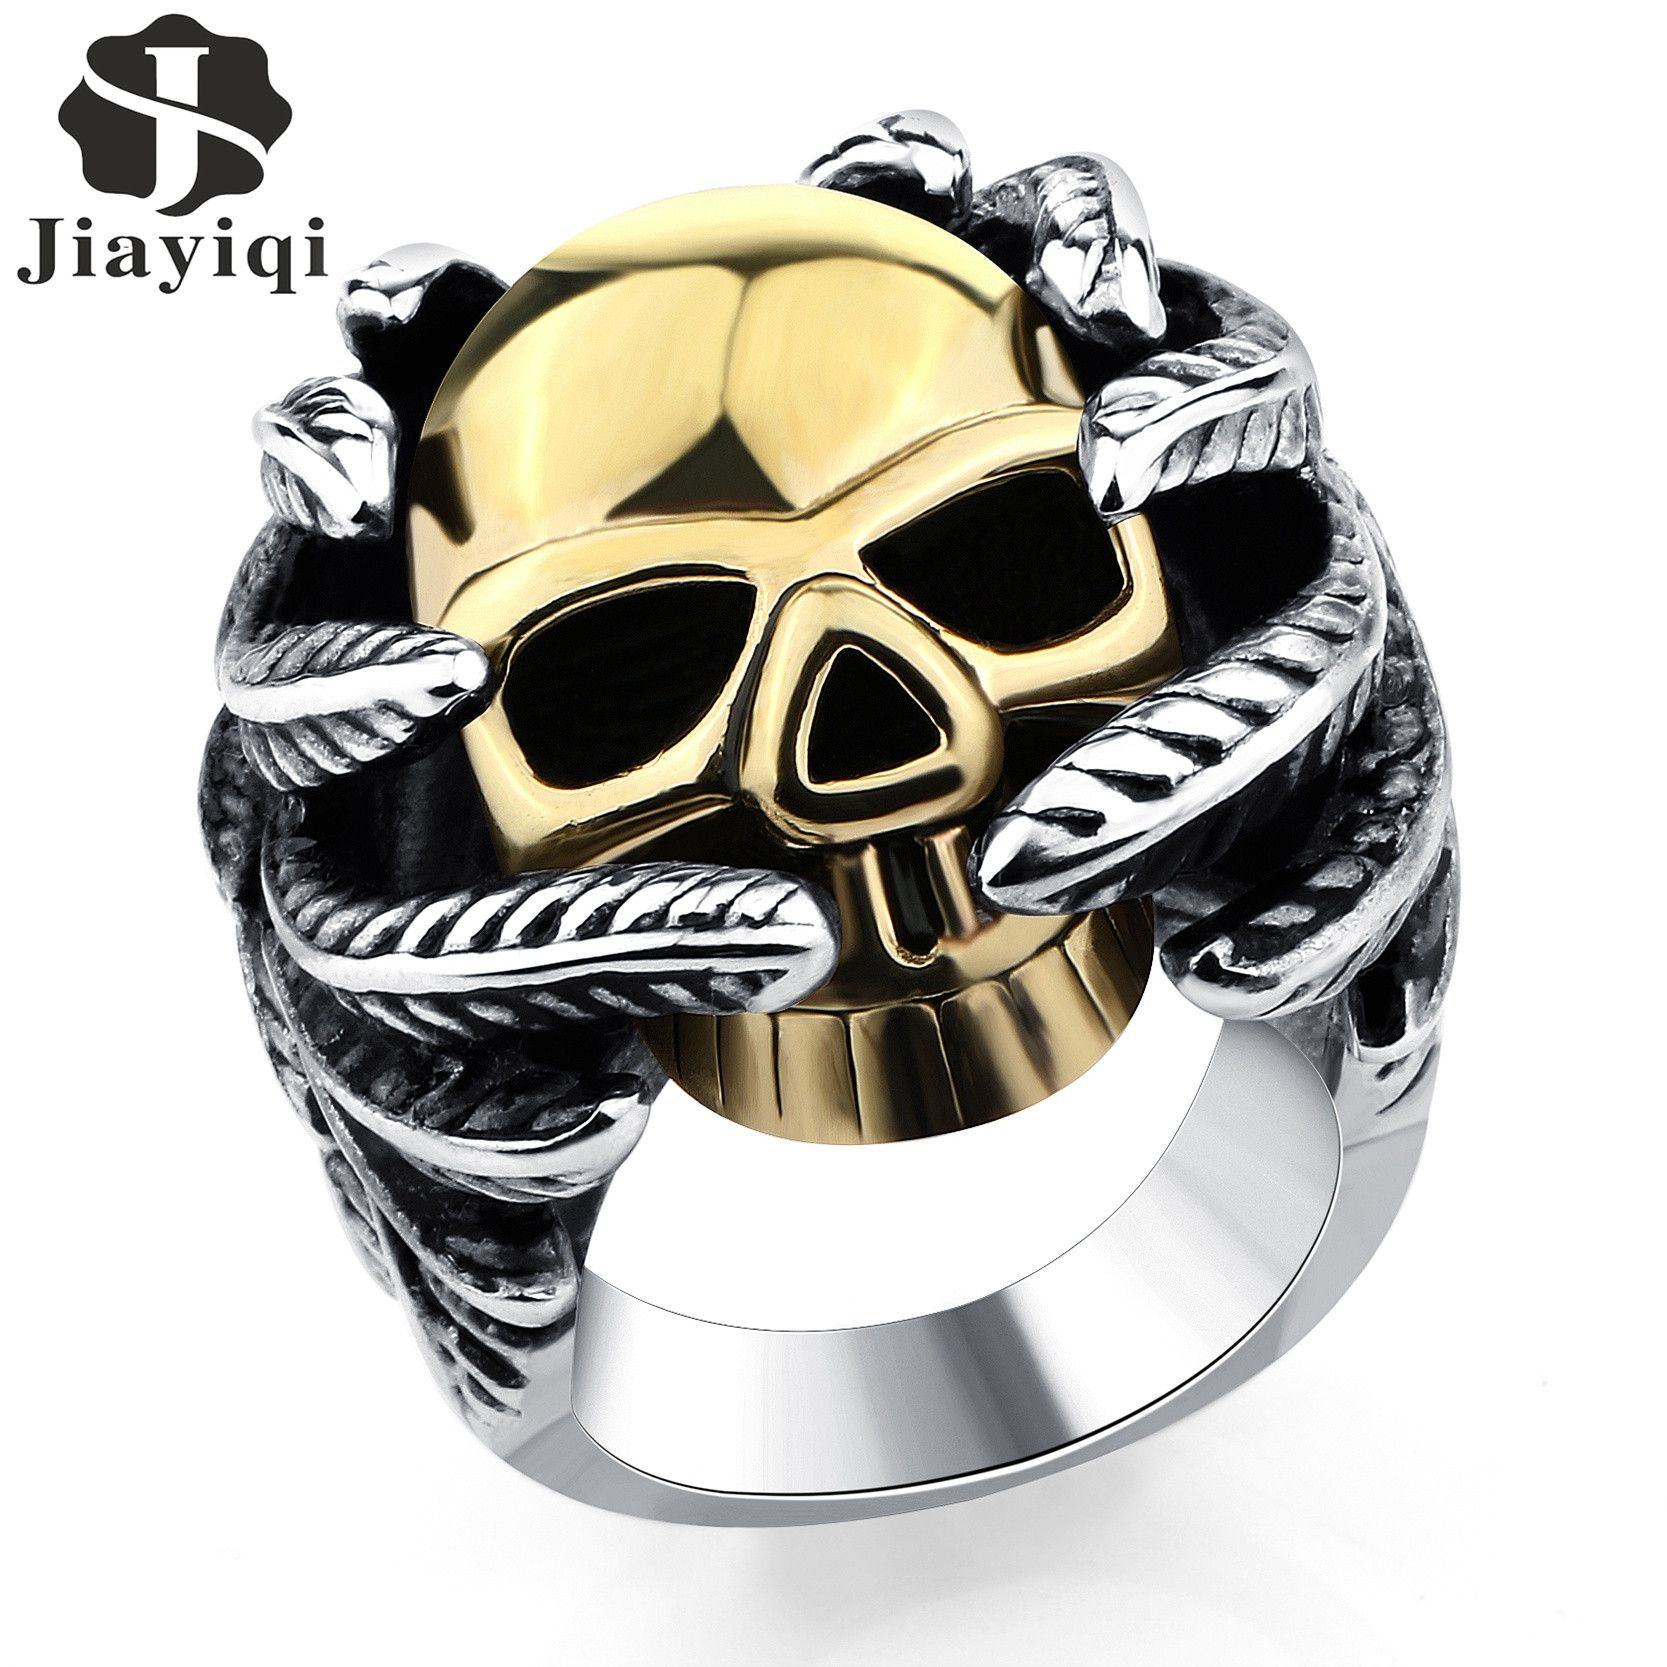 stainless king band simple crown product rings mens jewelry gothic biker steel raniway from vintage jeweler ring skeleton size punk rock engagement